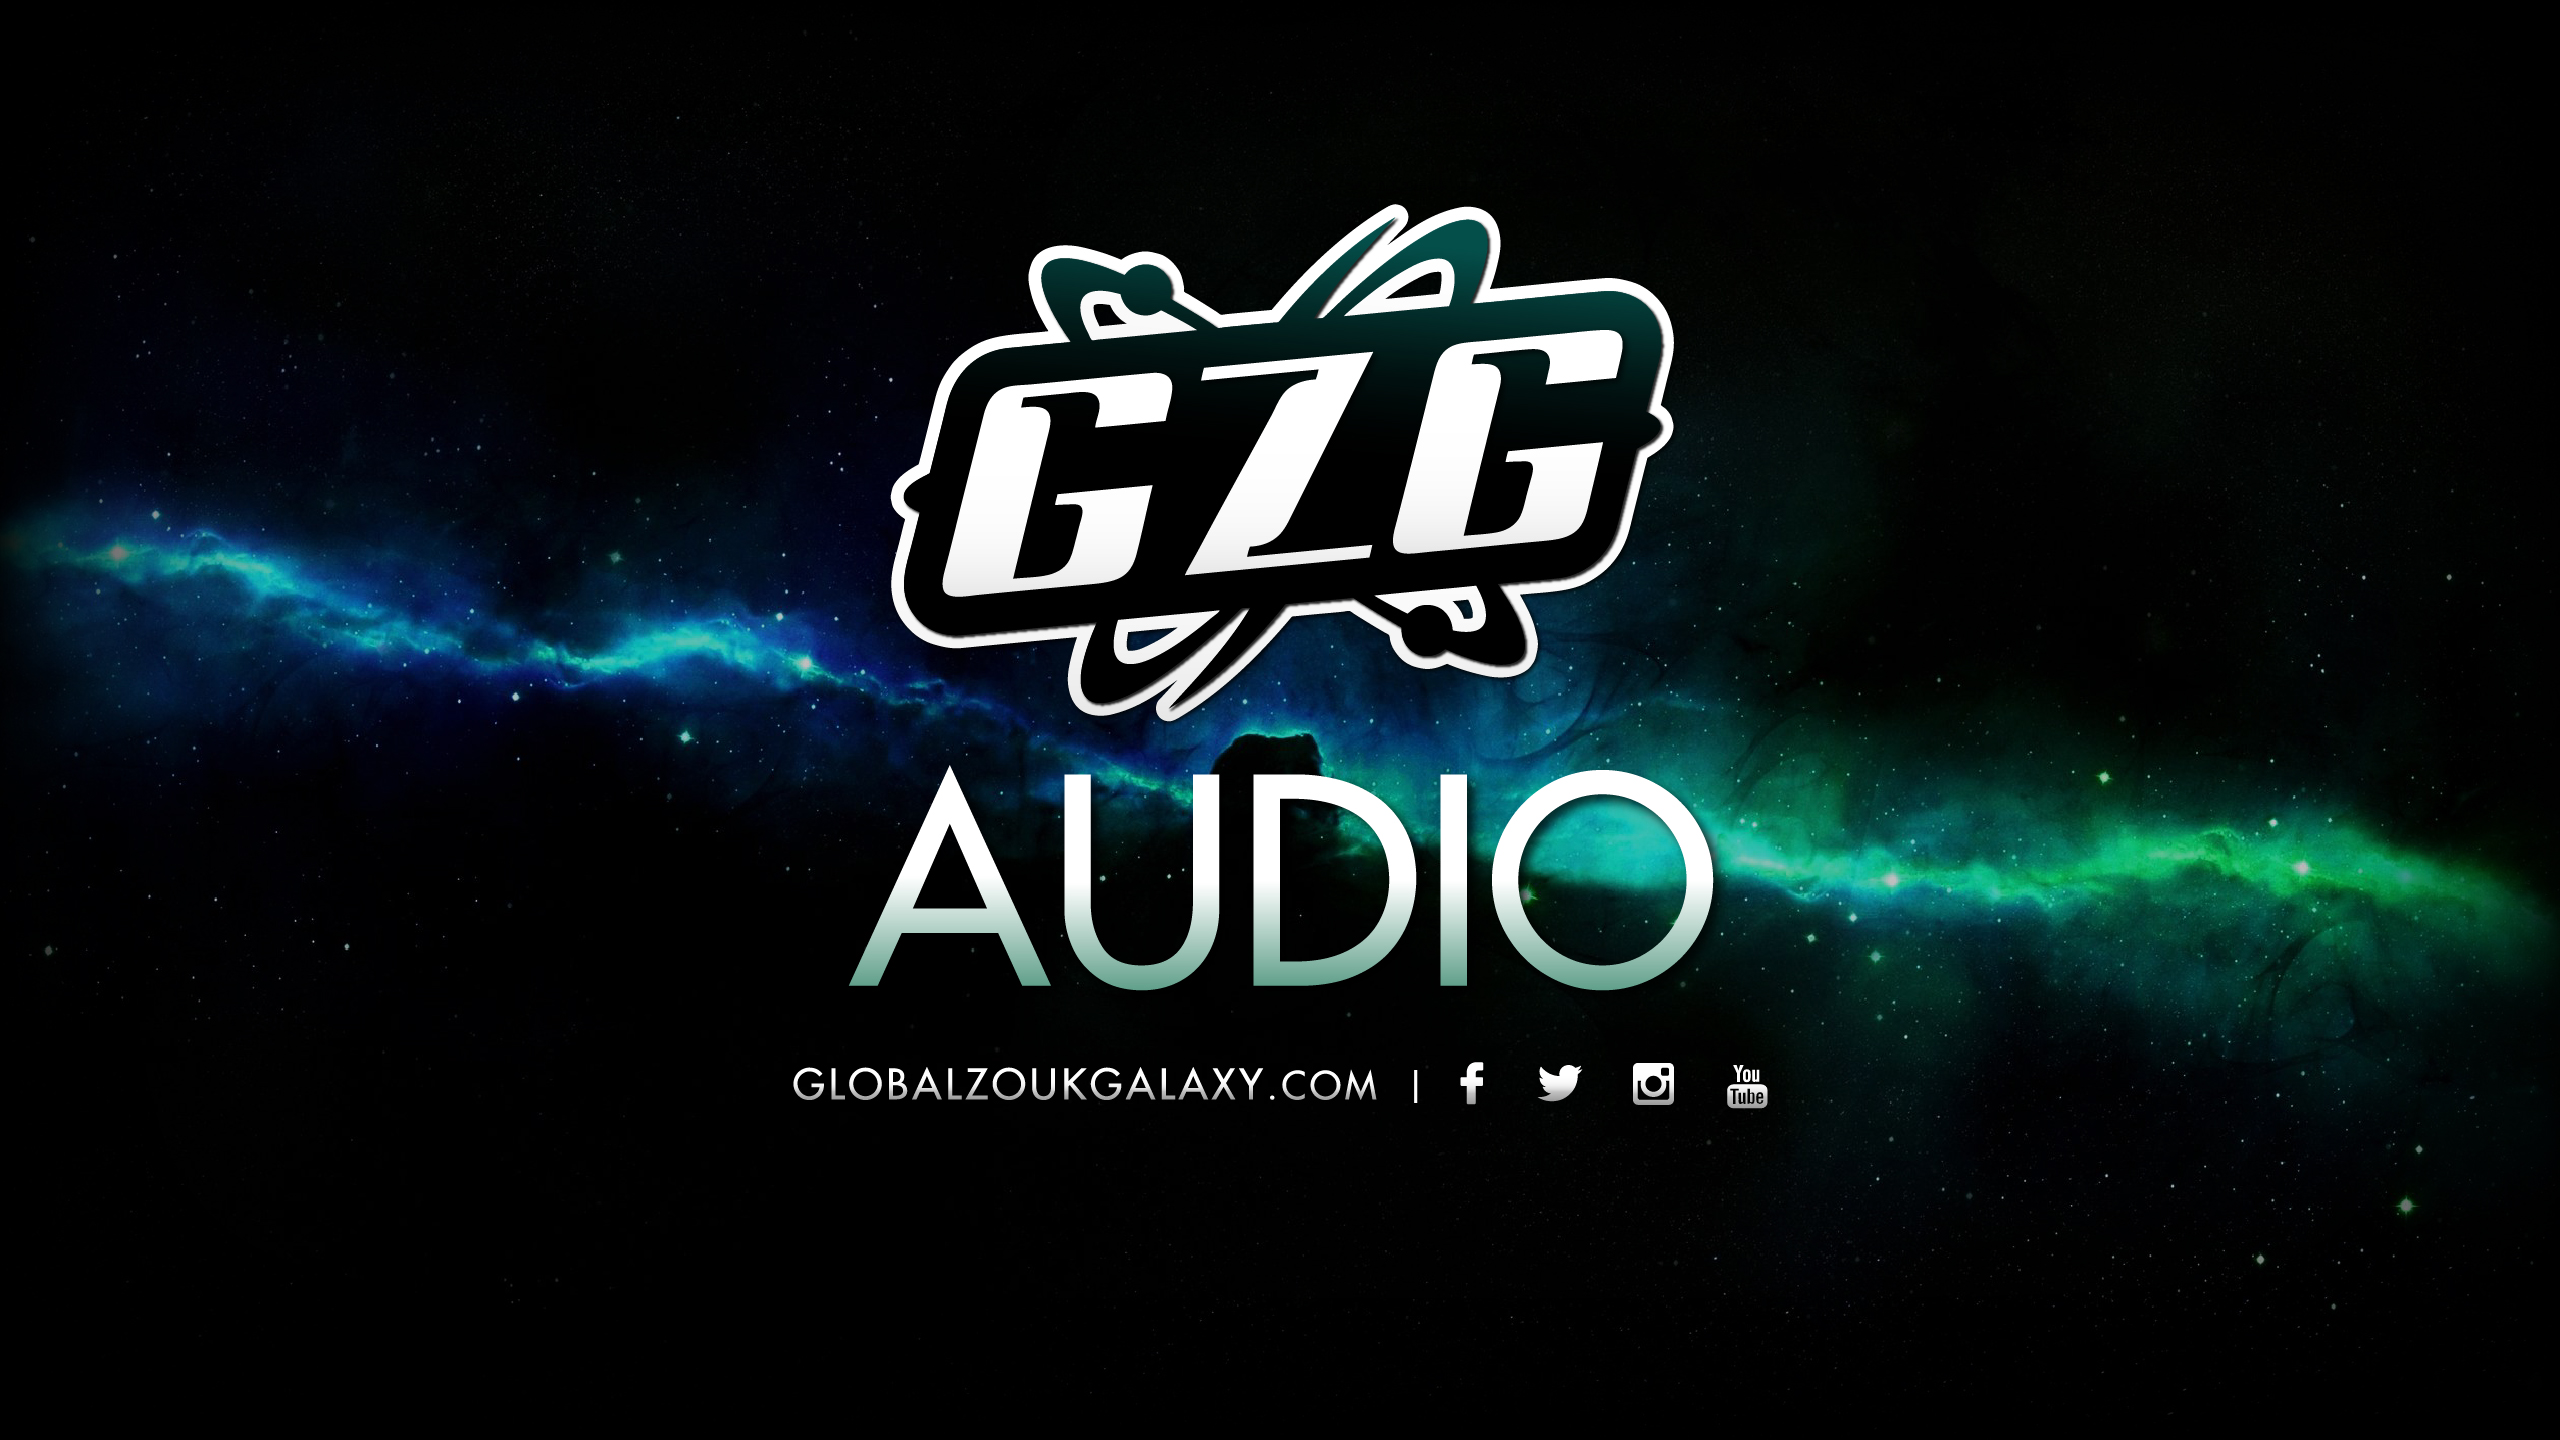 GLOBAL ZOUK GALAXY AUDIO PLAYLIST (Kizomba)